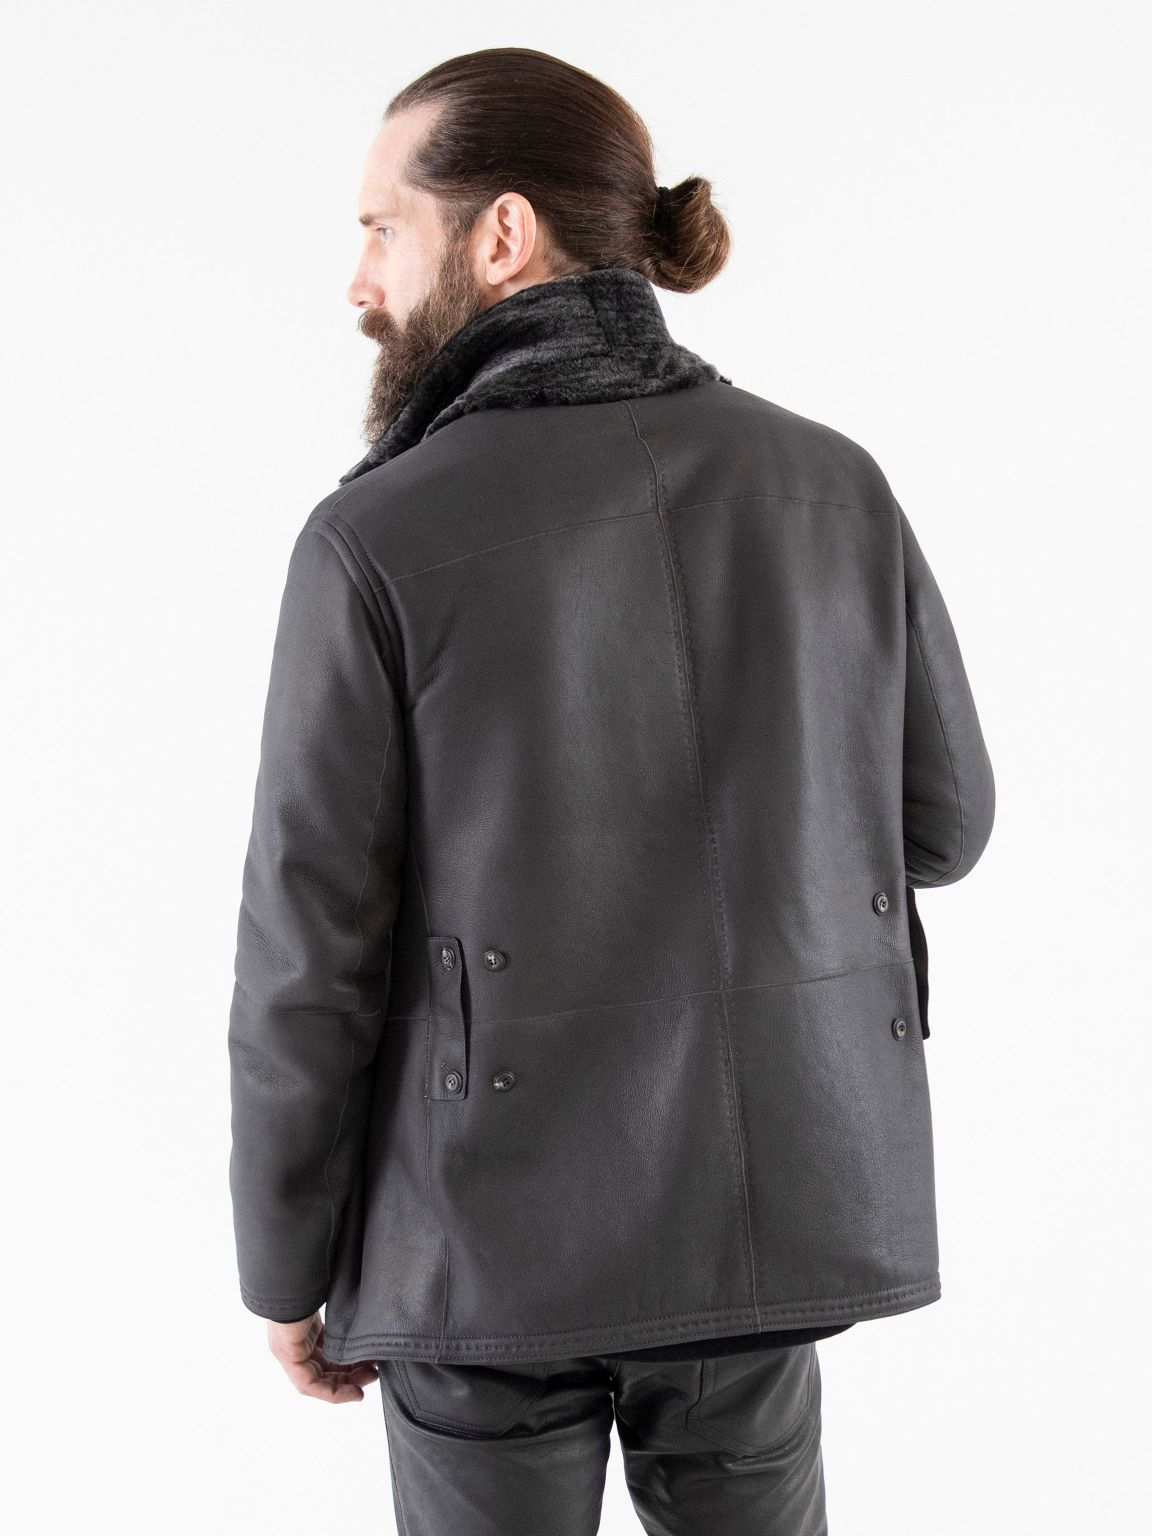 Nappa side of reversible shearling depicting relaxed latch